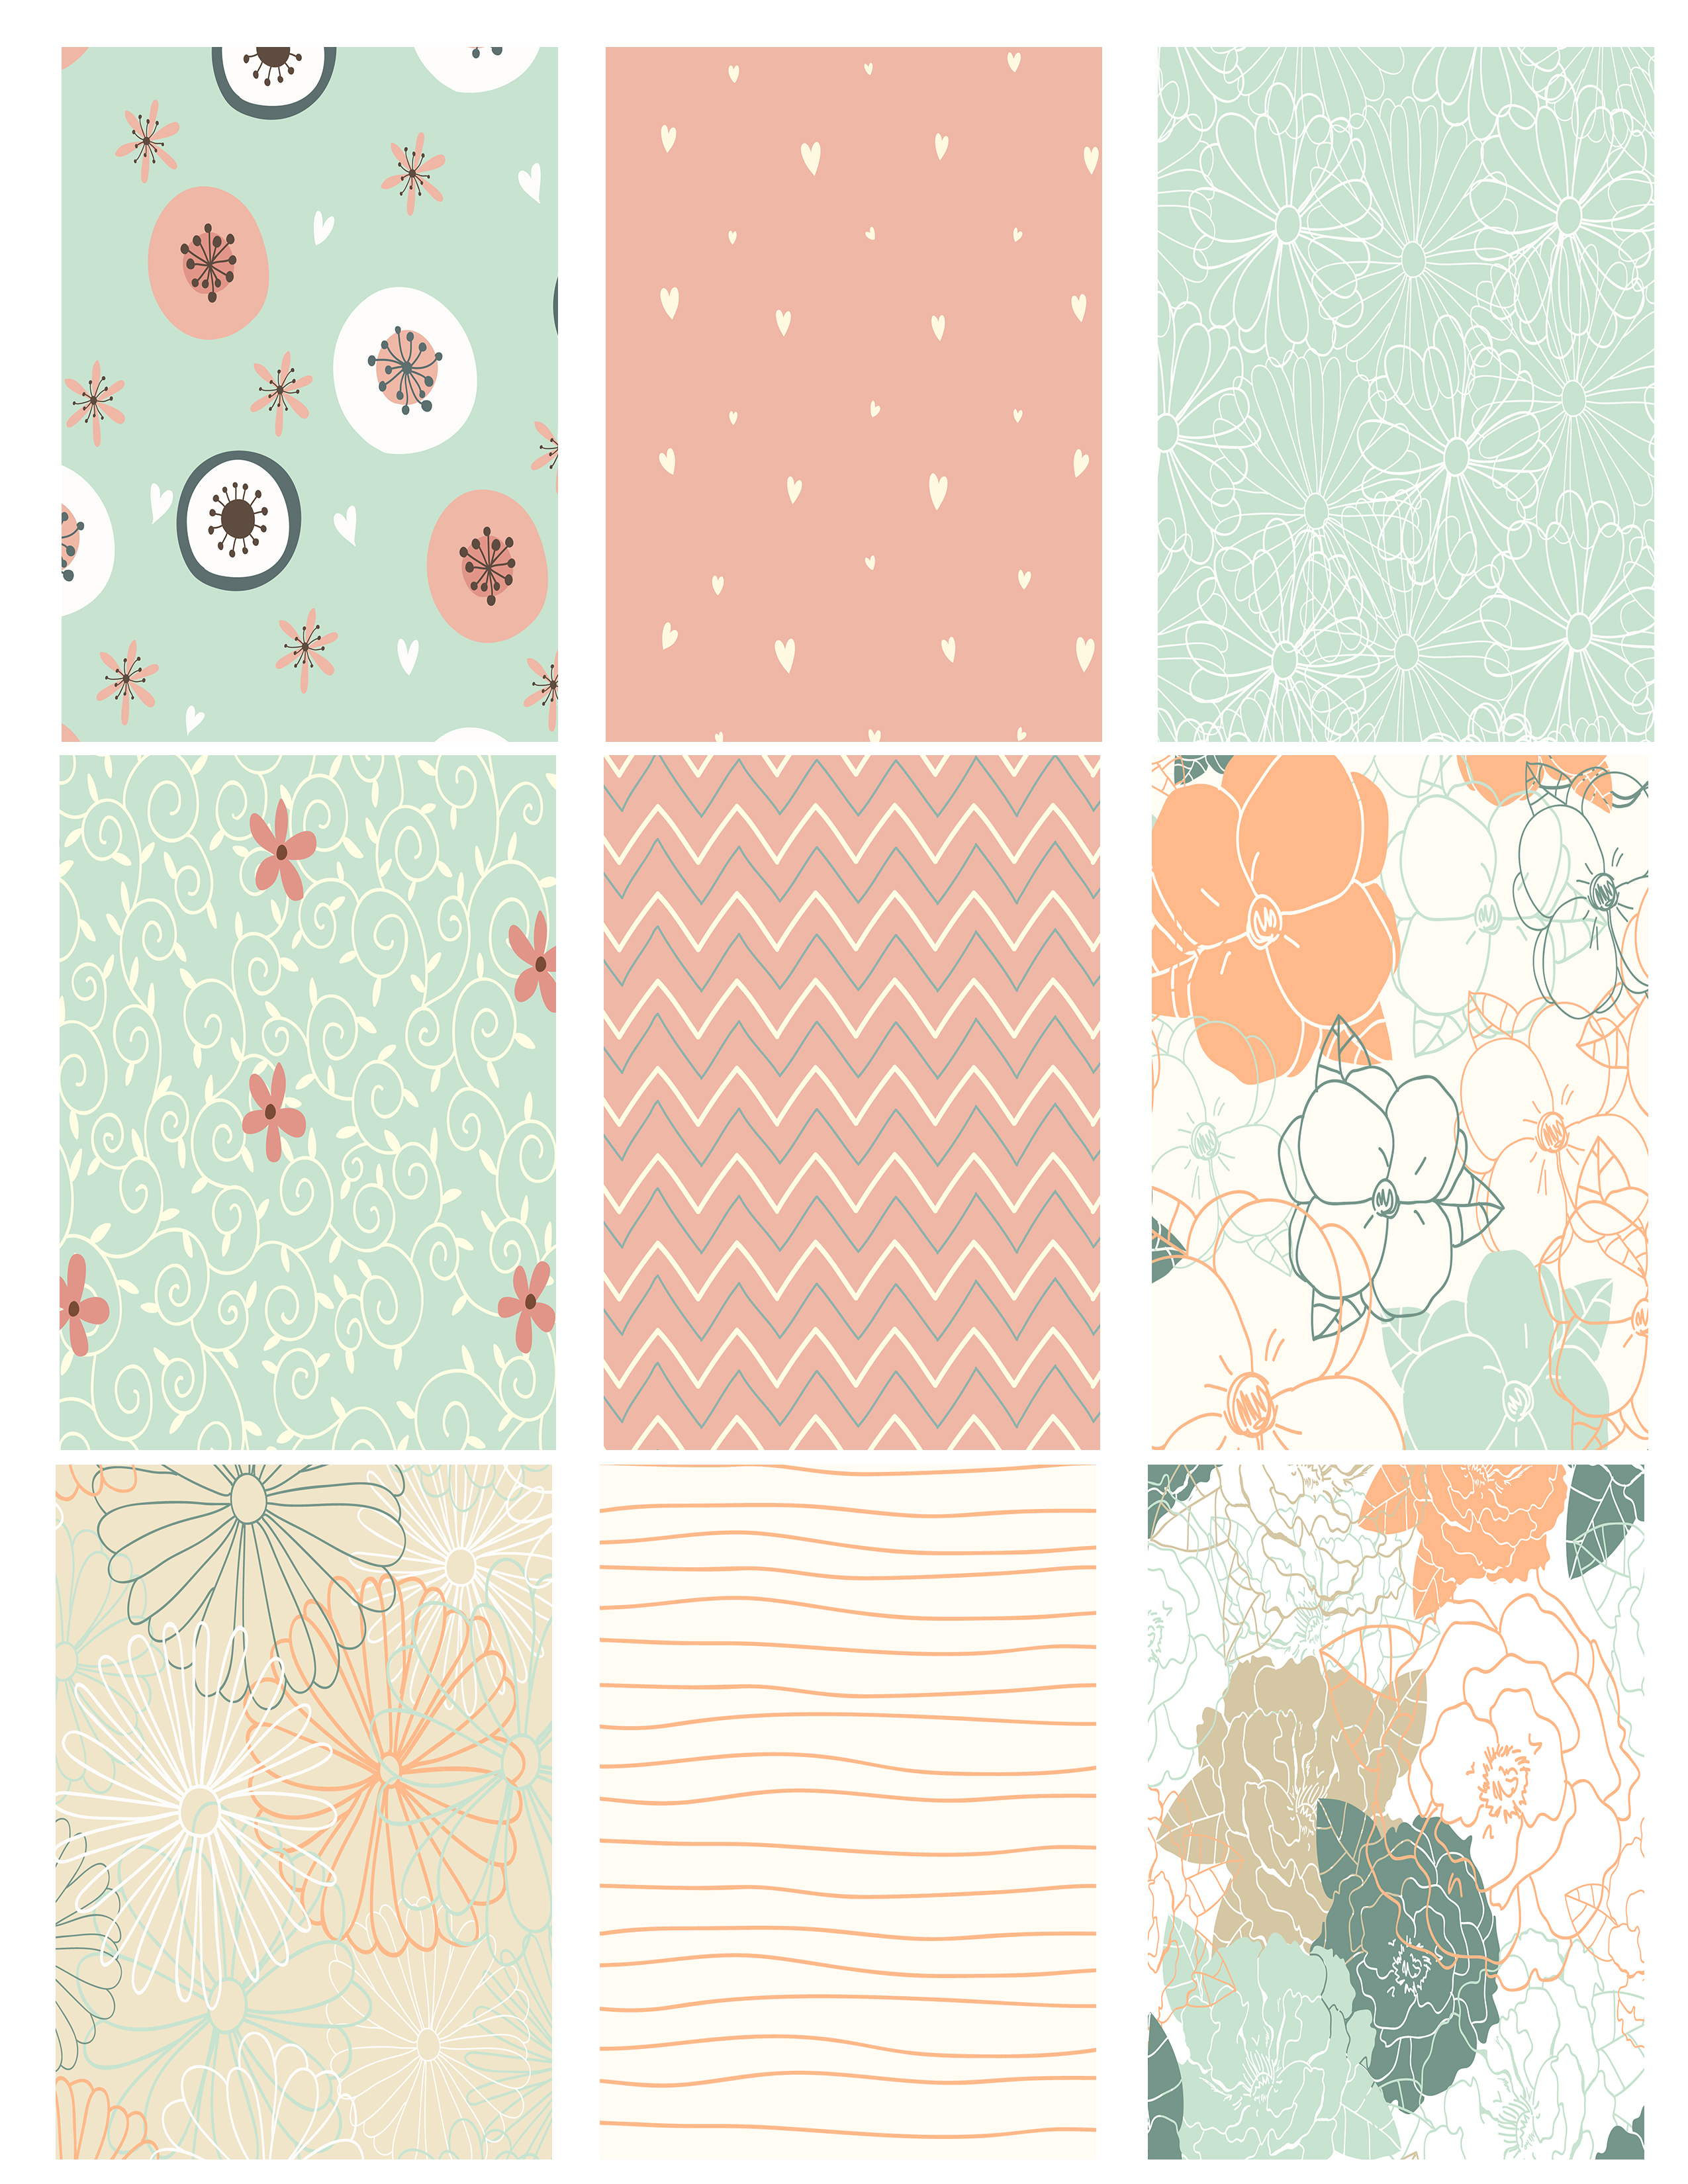 Printable Atc Background Collage Sheet - Whimsical Patterns - The - Free Printable Backgrounds